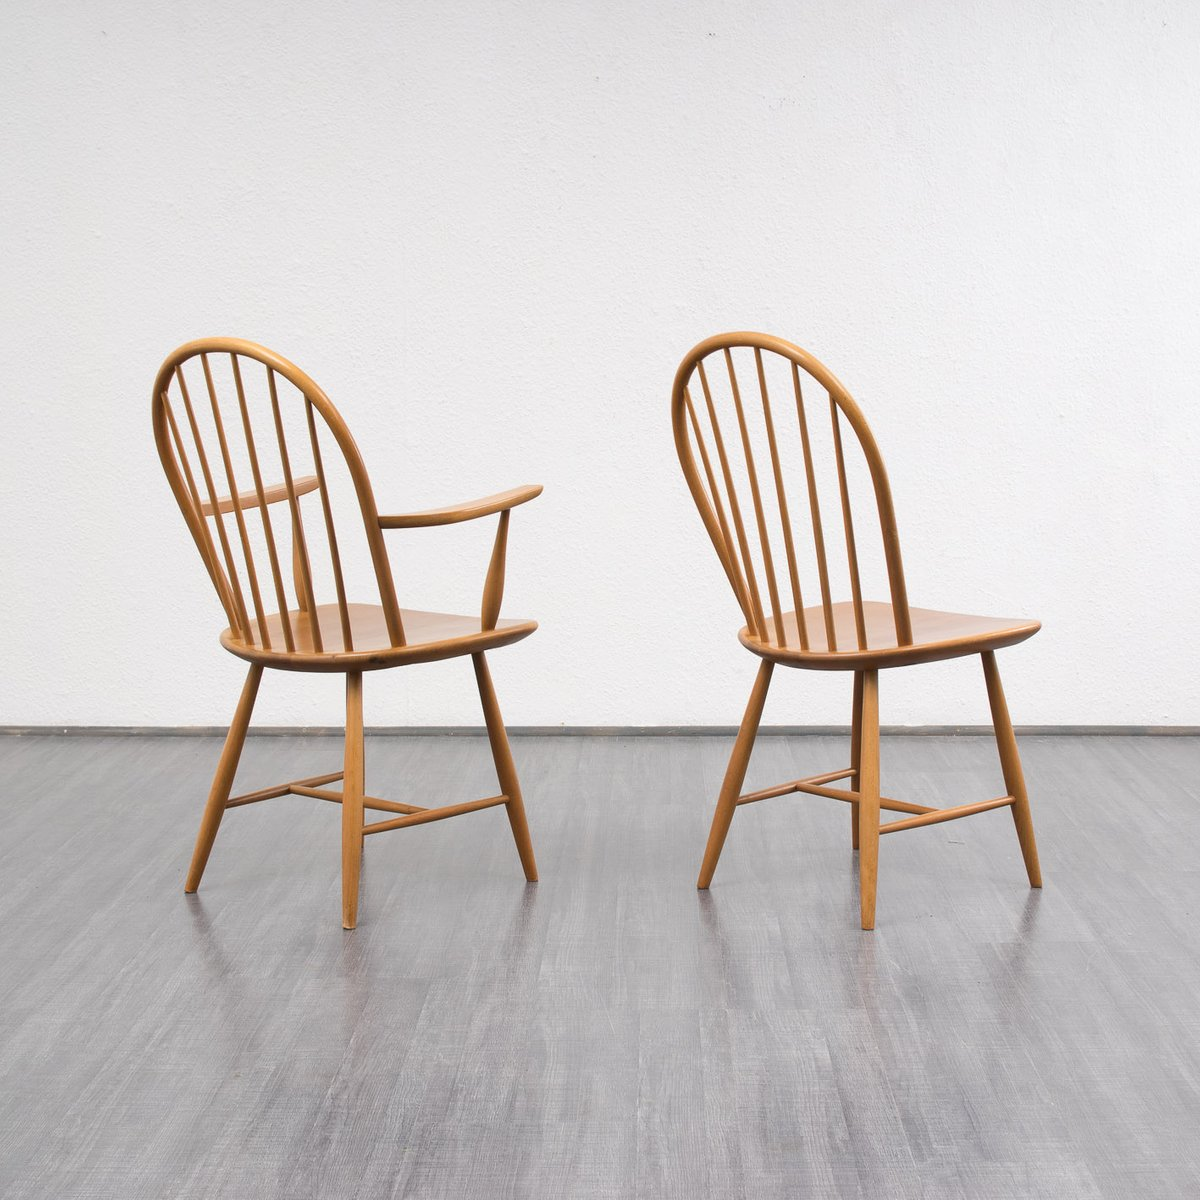 Vintage beech wood dining chairs set of 4 for sale at pamono for Dining chairs 4 set